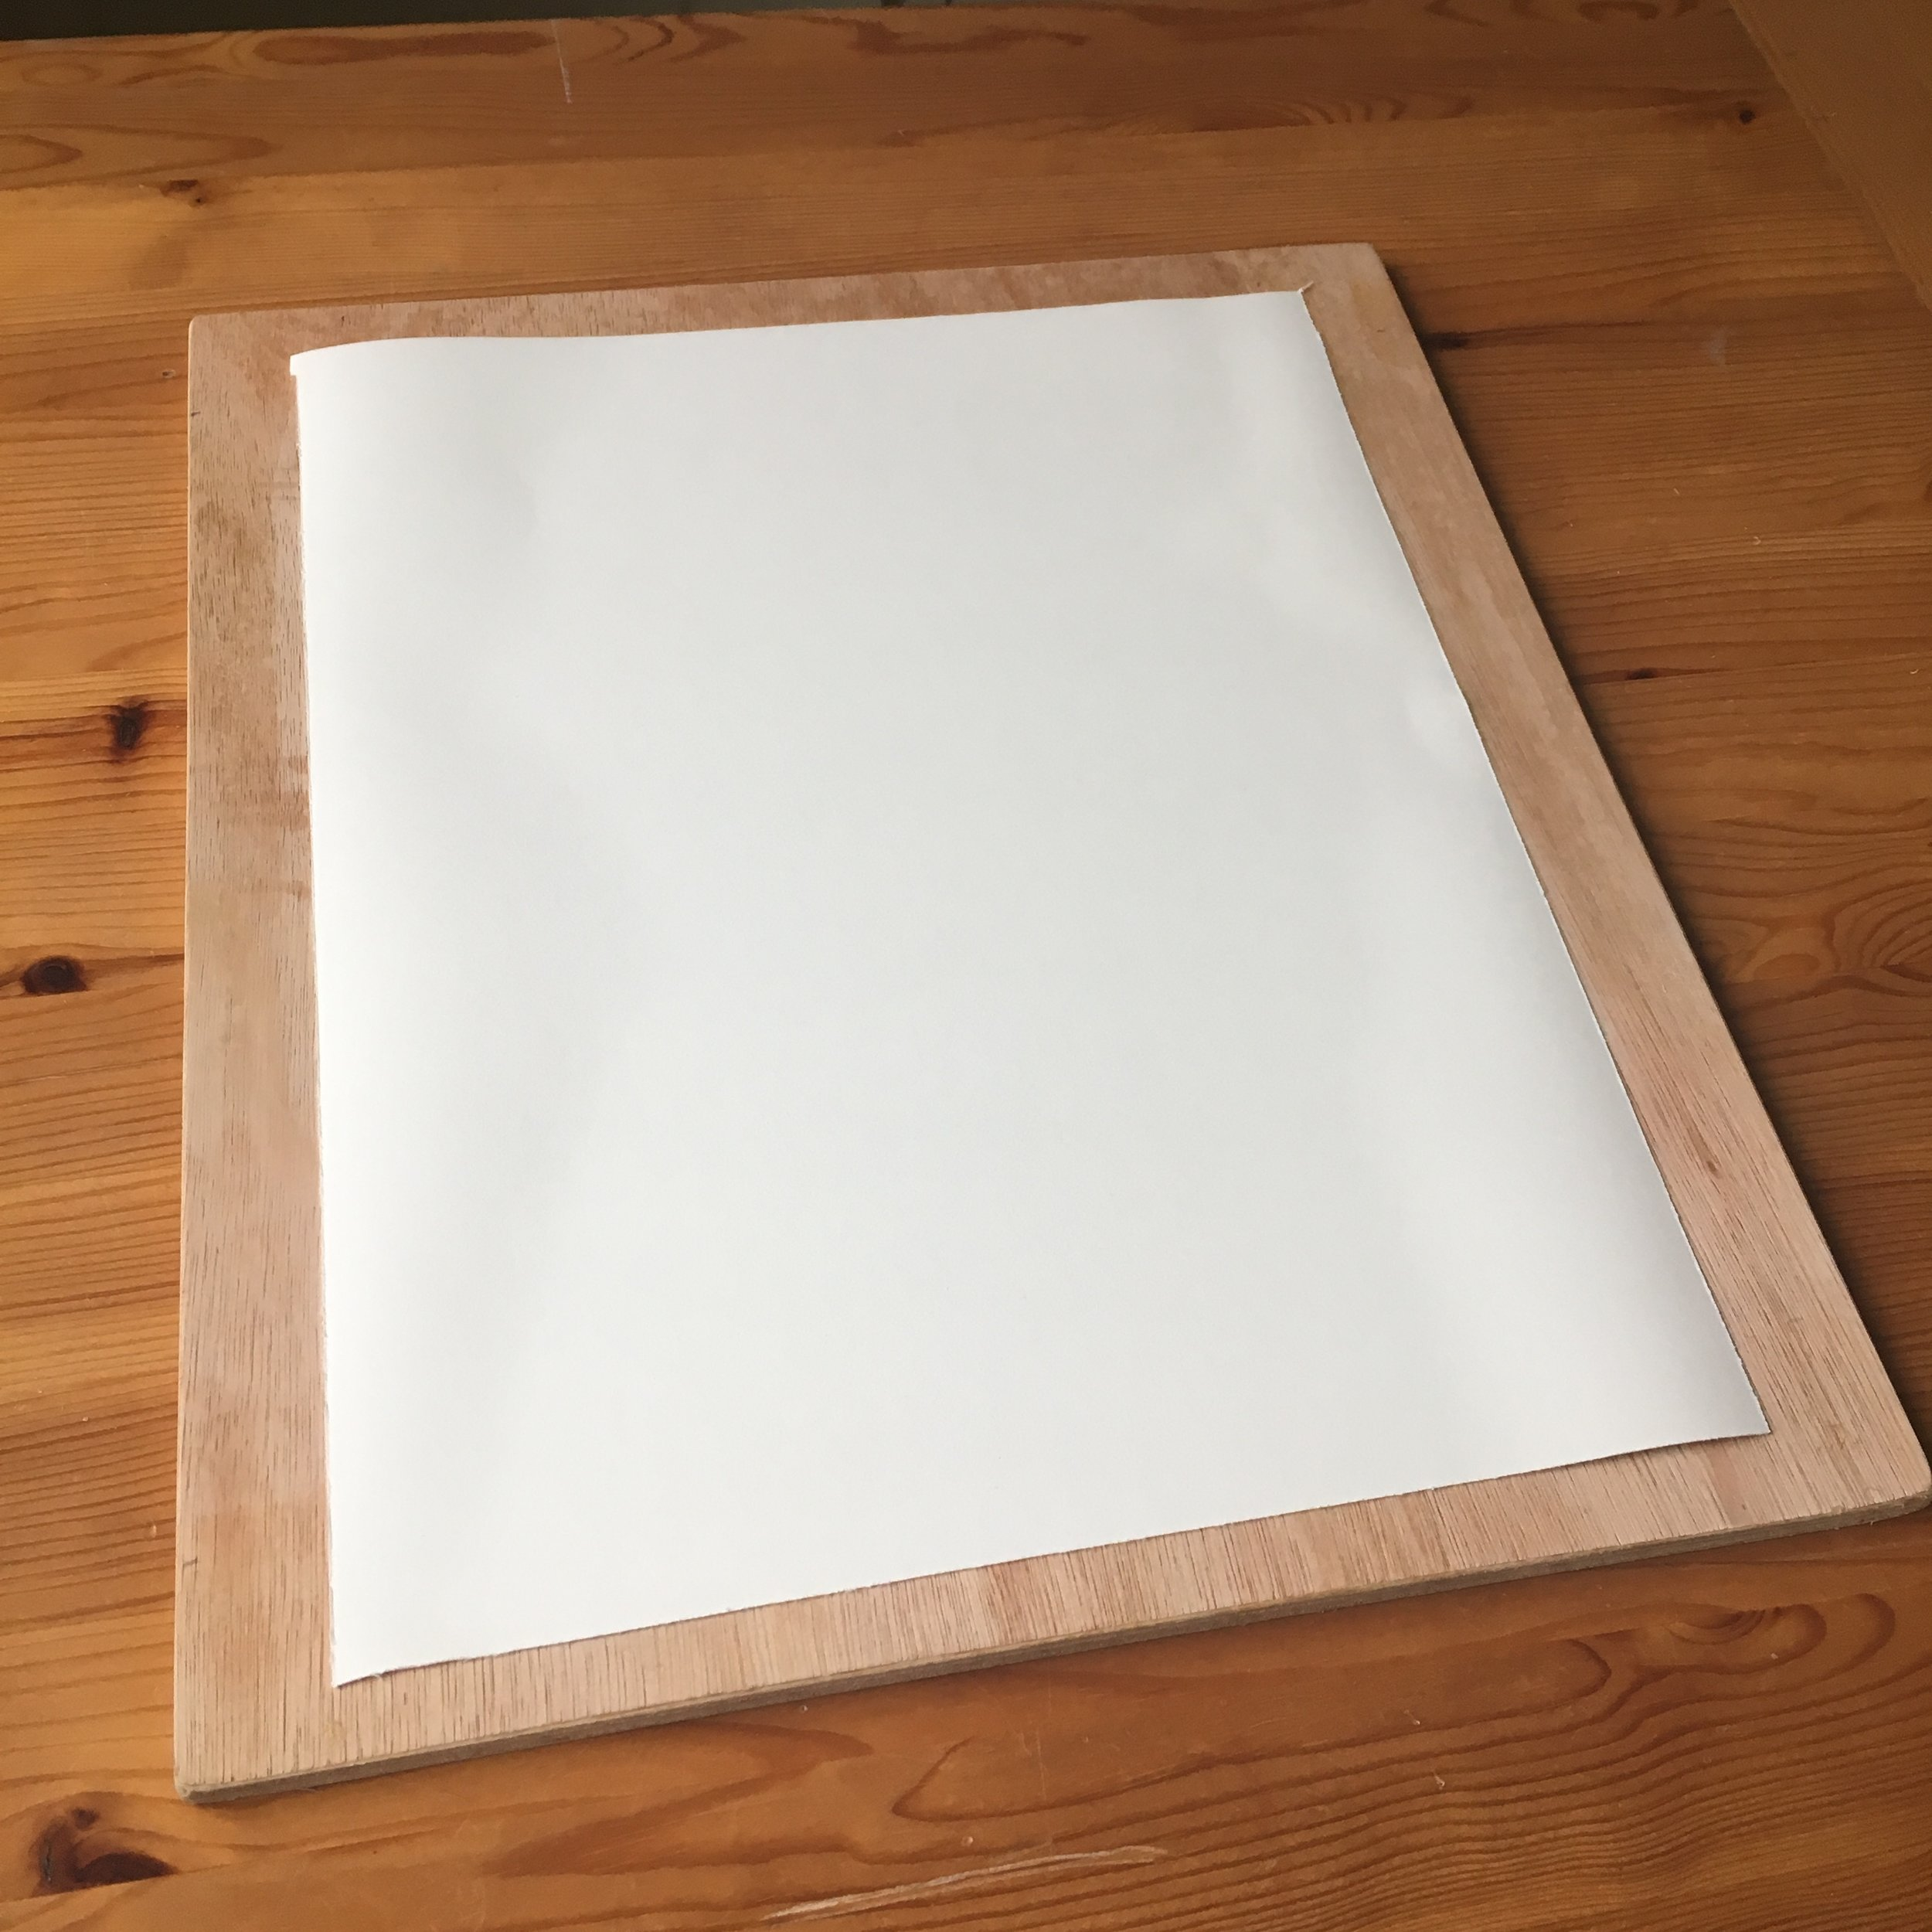 Ensure you have enough board surrounding your paper to allow the gummed tape to stick.